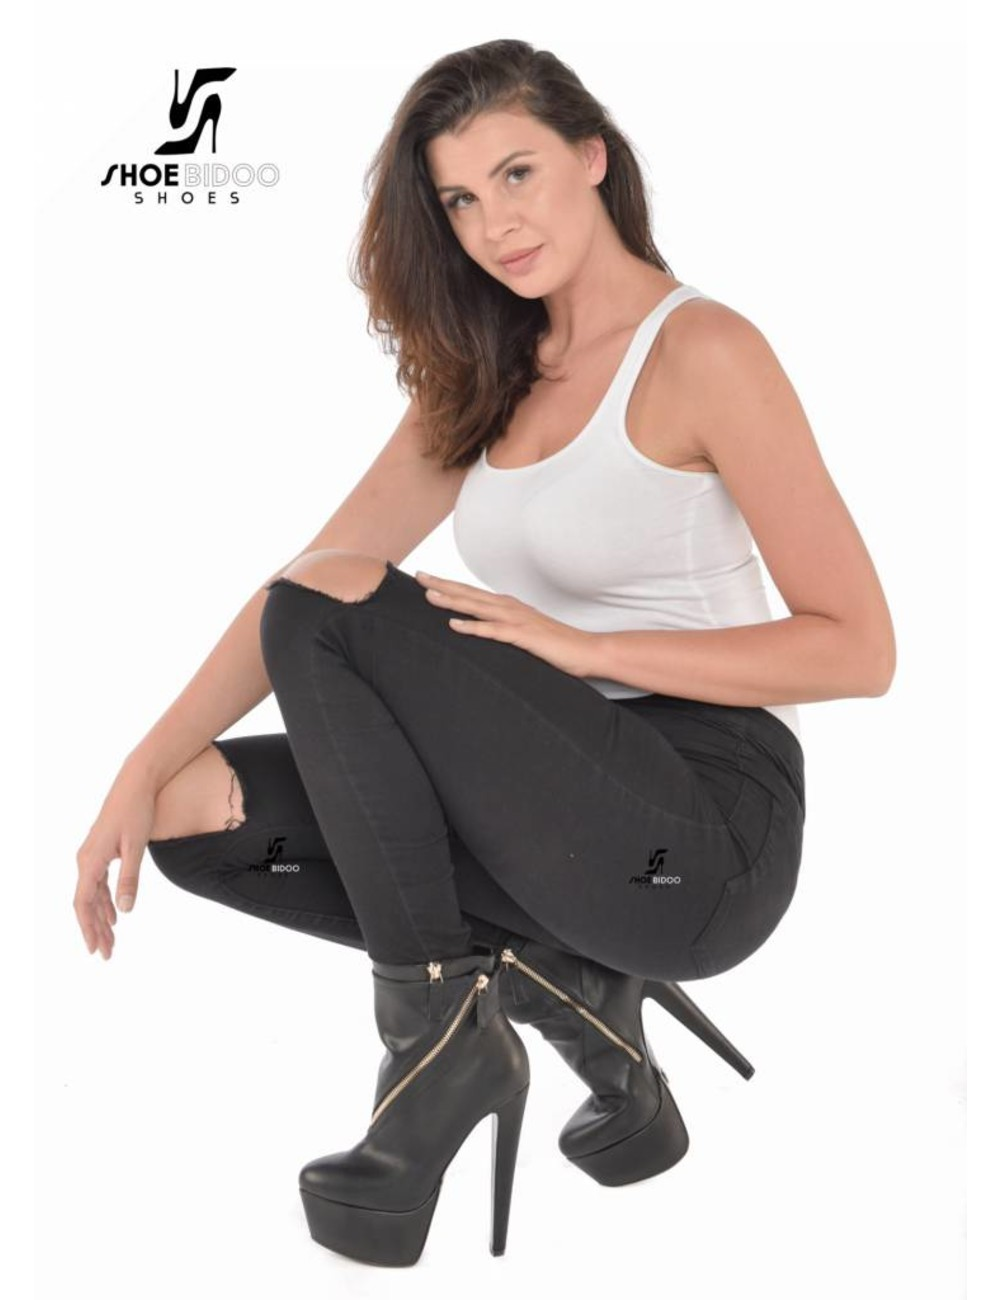 Giaro Olga in Destroyer ankle boots